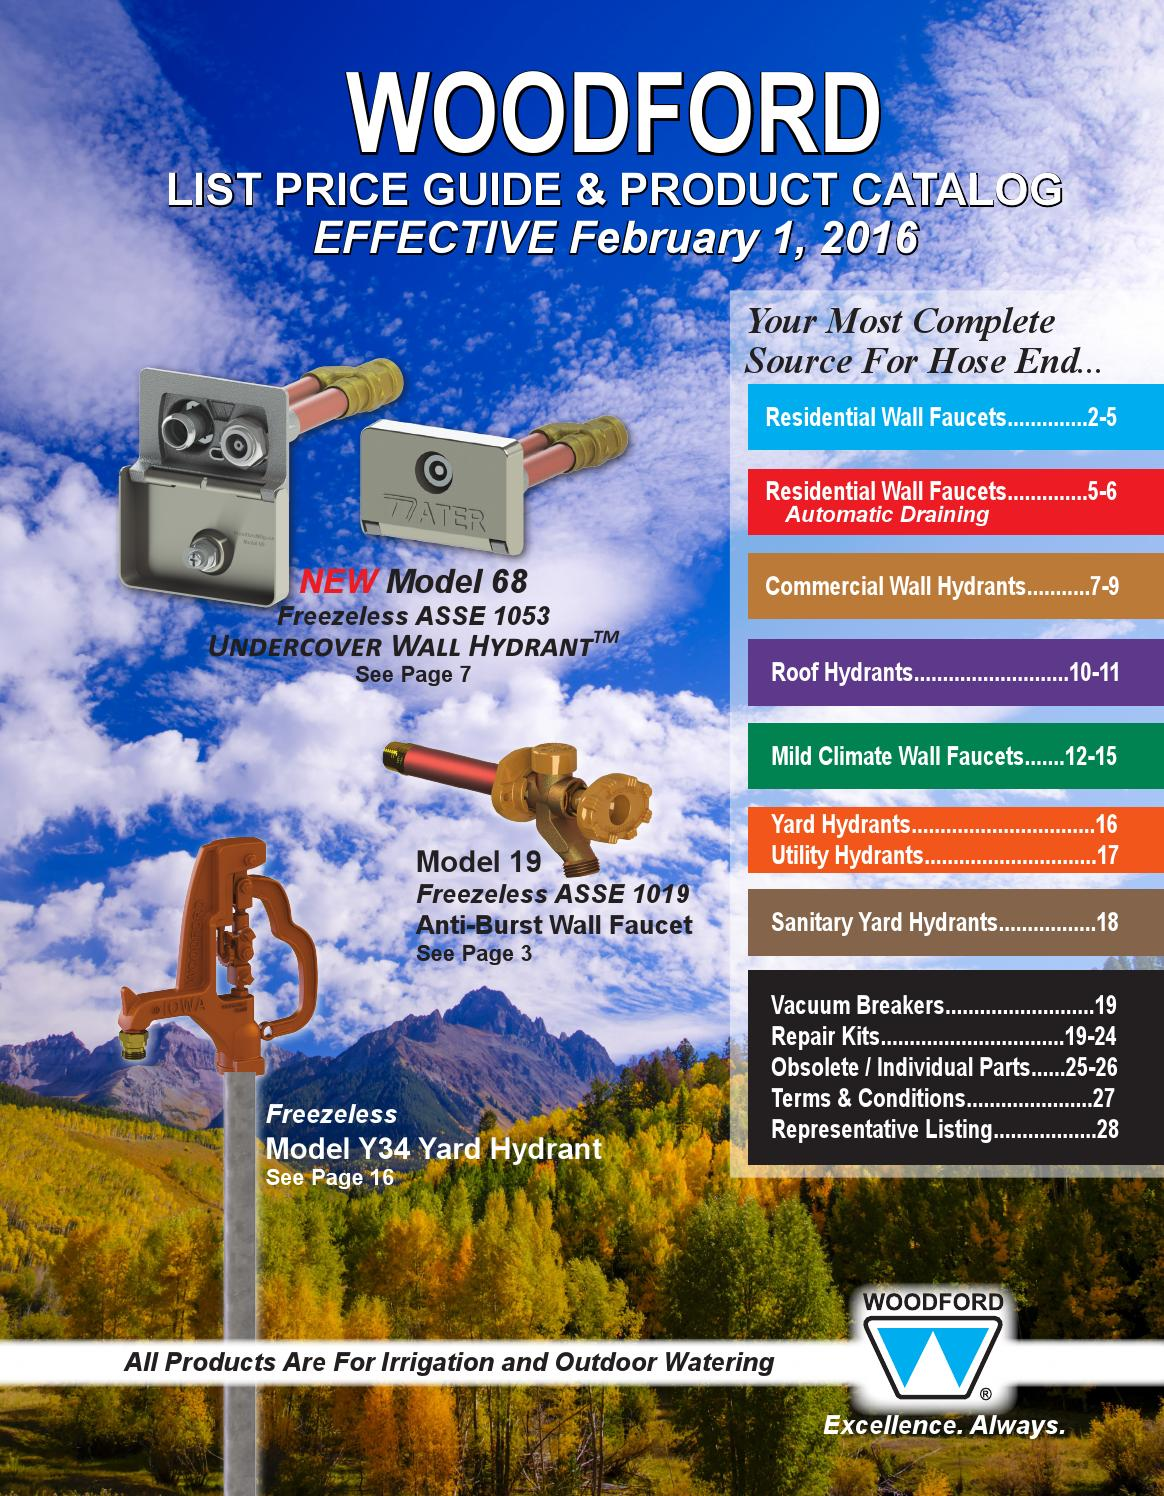 Woodford 2016 Price Guide By Wcm Industries Inc Issuu